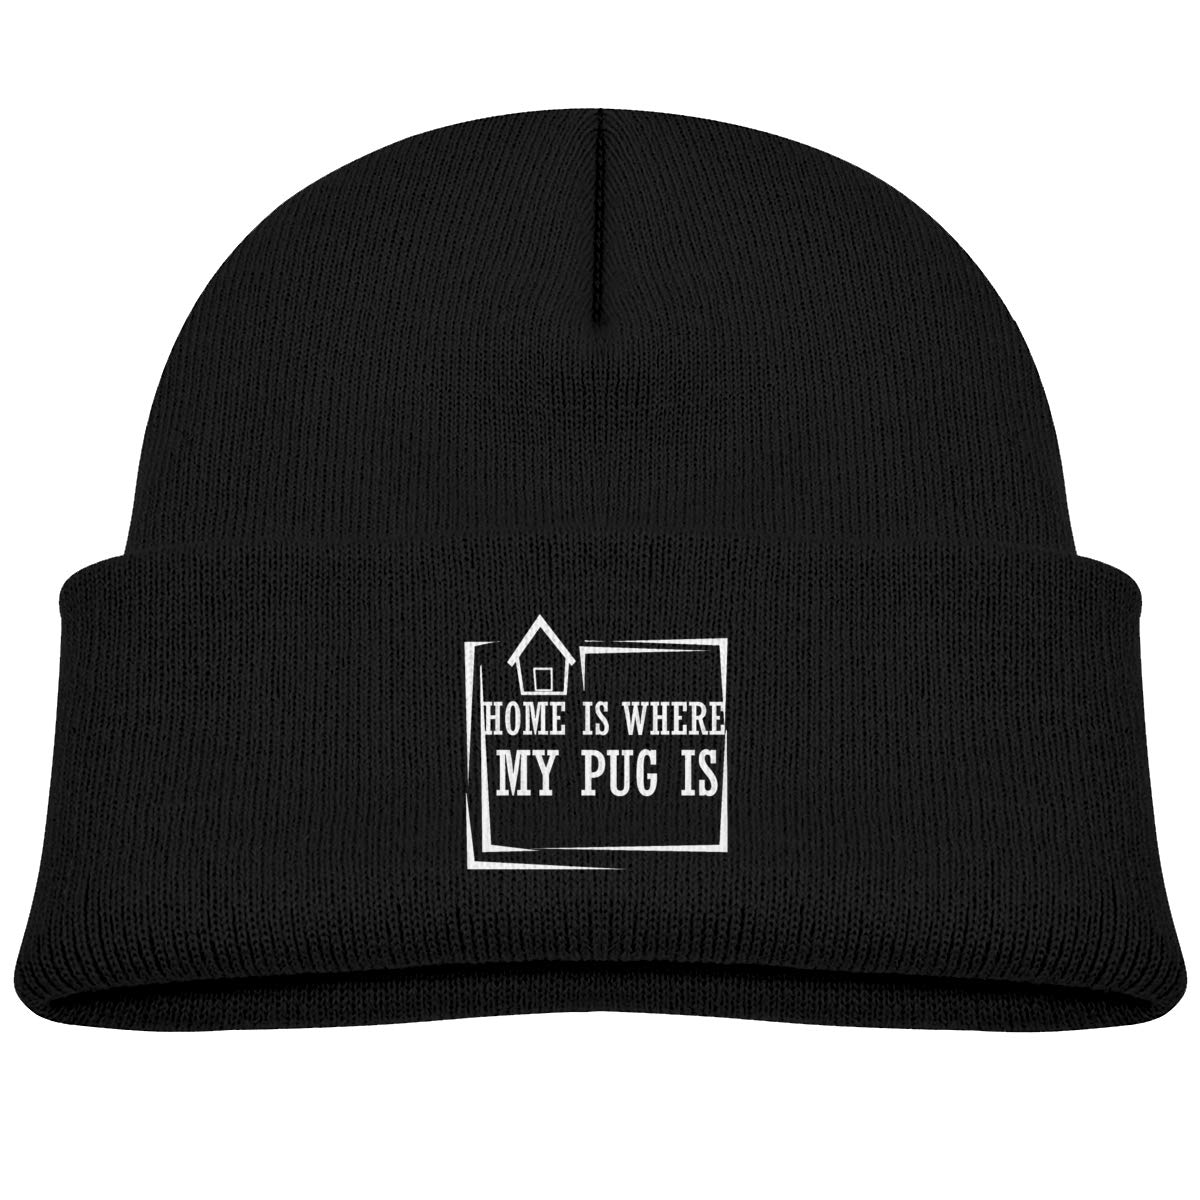 Hanfjj Kefdk Home is Where My Pug is Infant Knit Hats Kids Beanies Cap